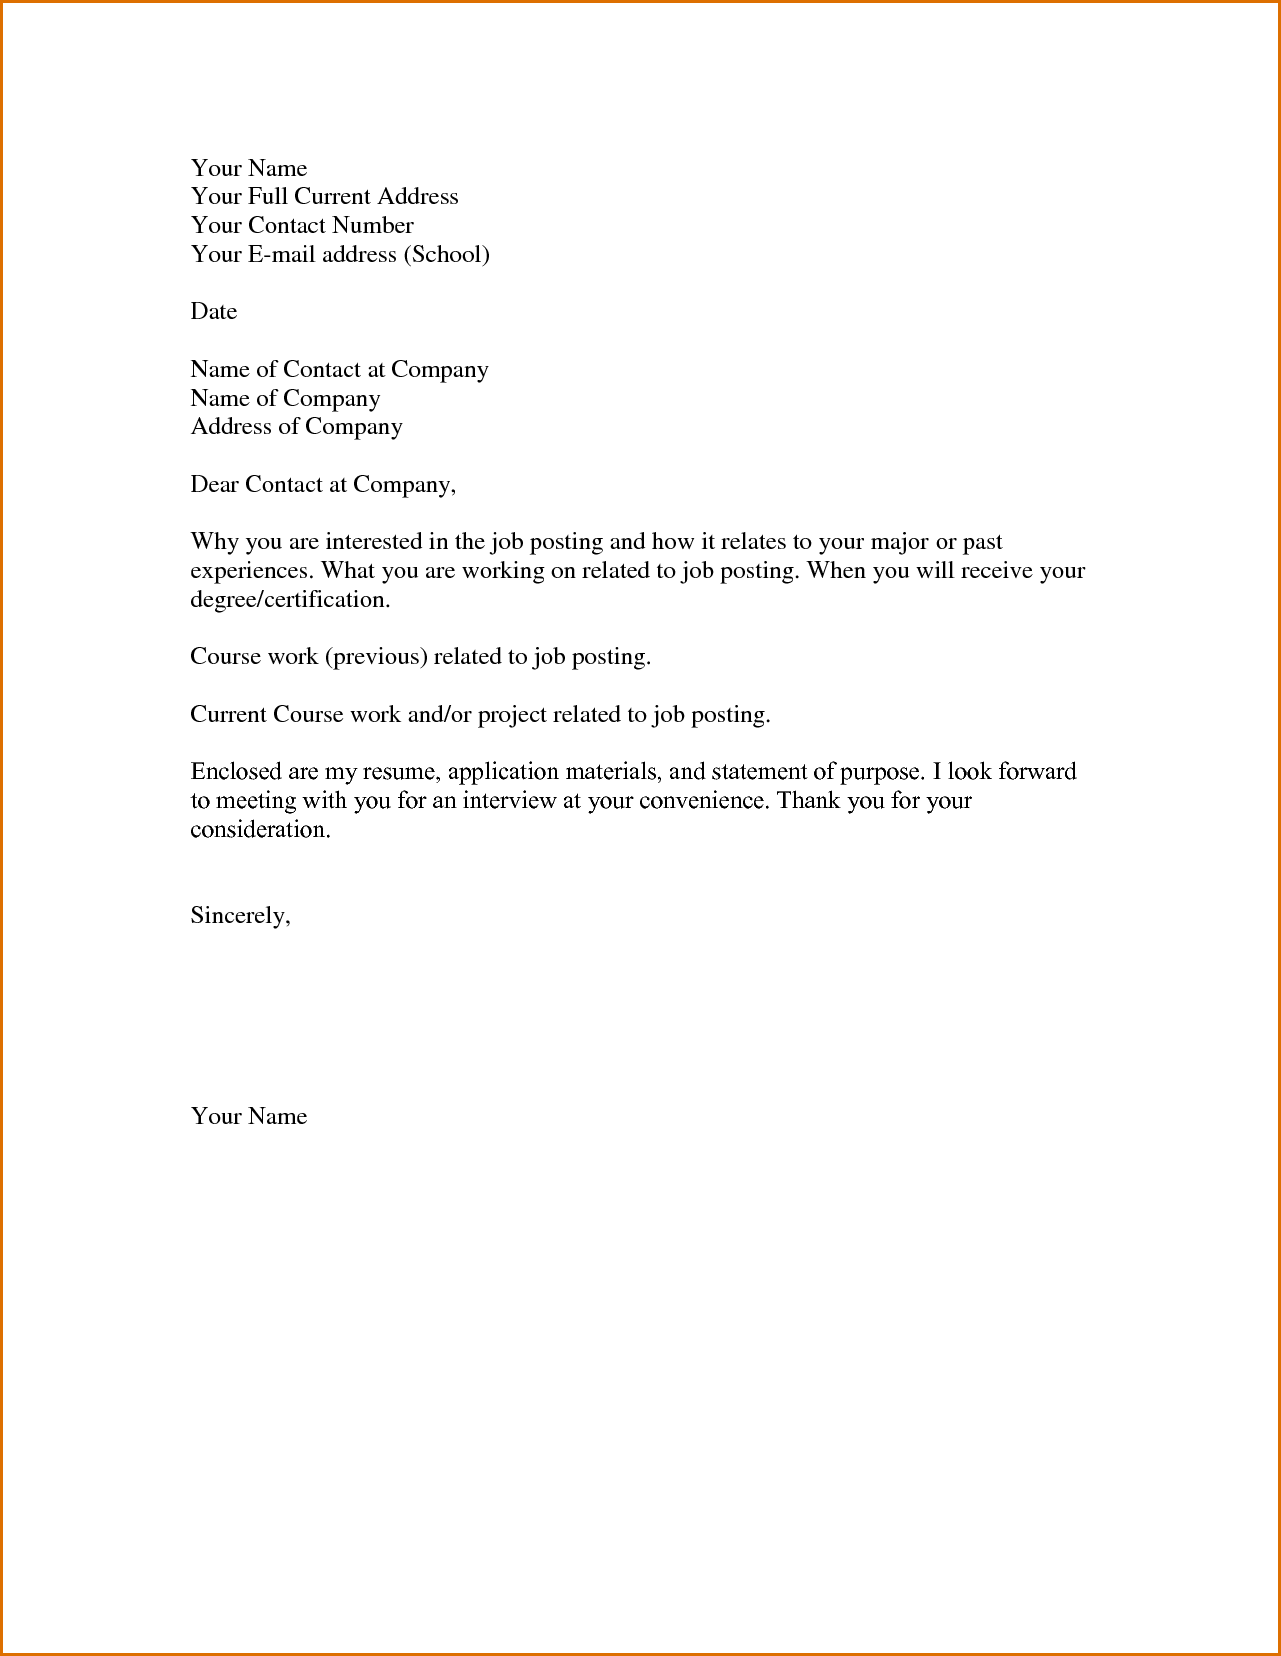 basic cover letter for employment Kleo.beachfix.co